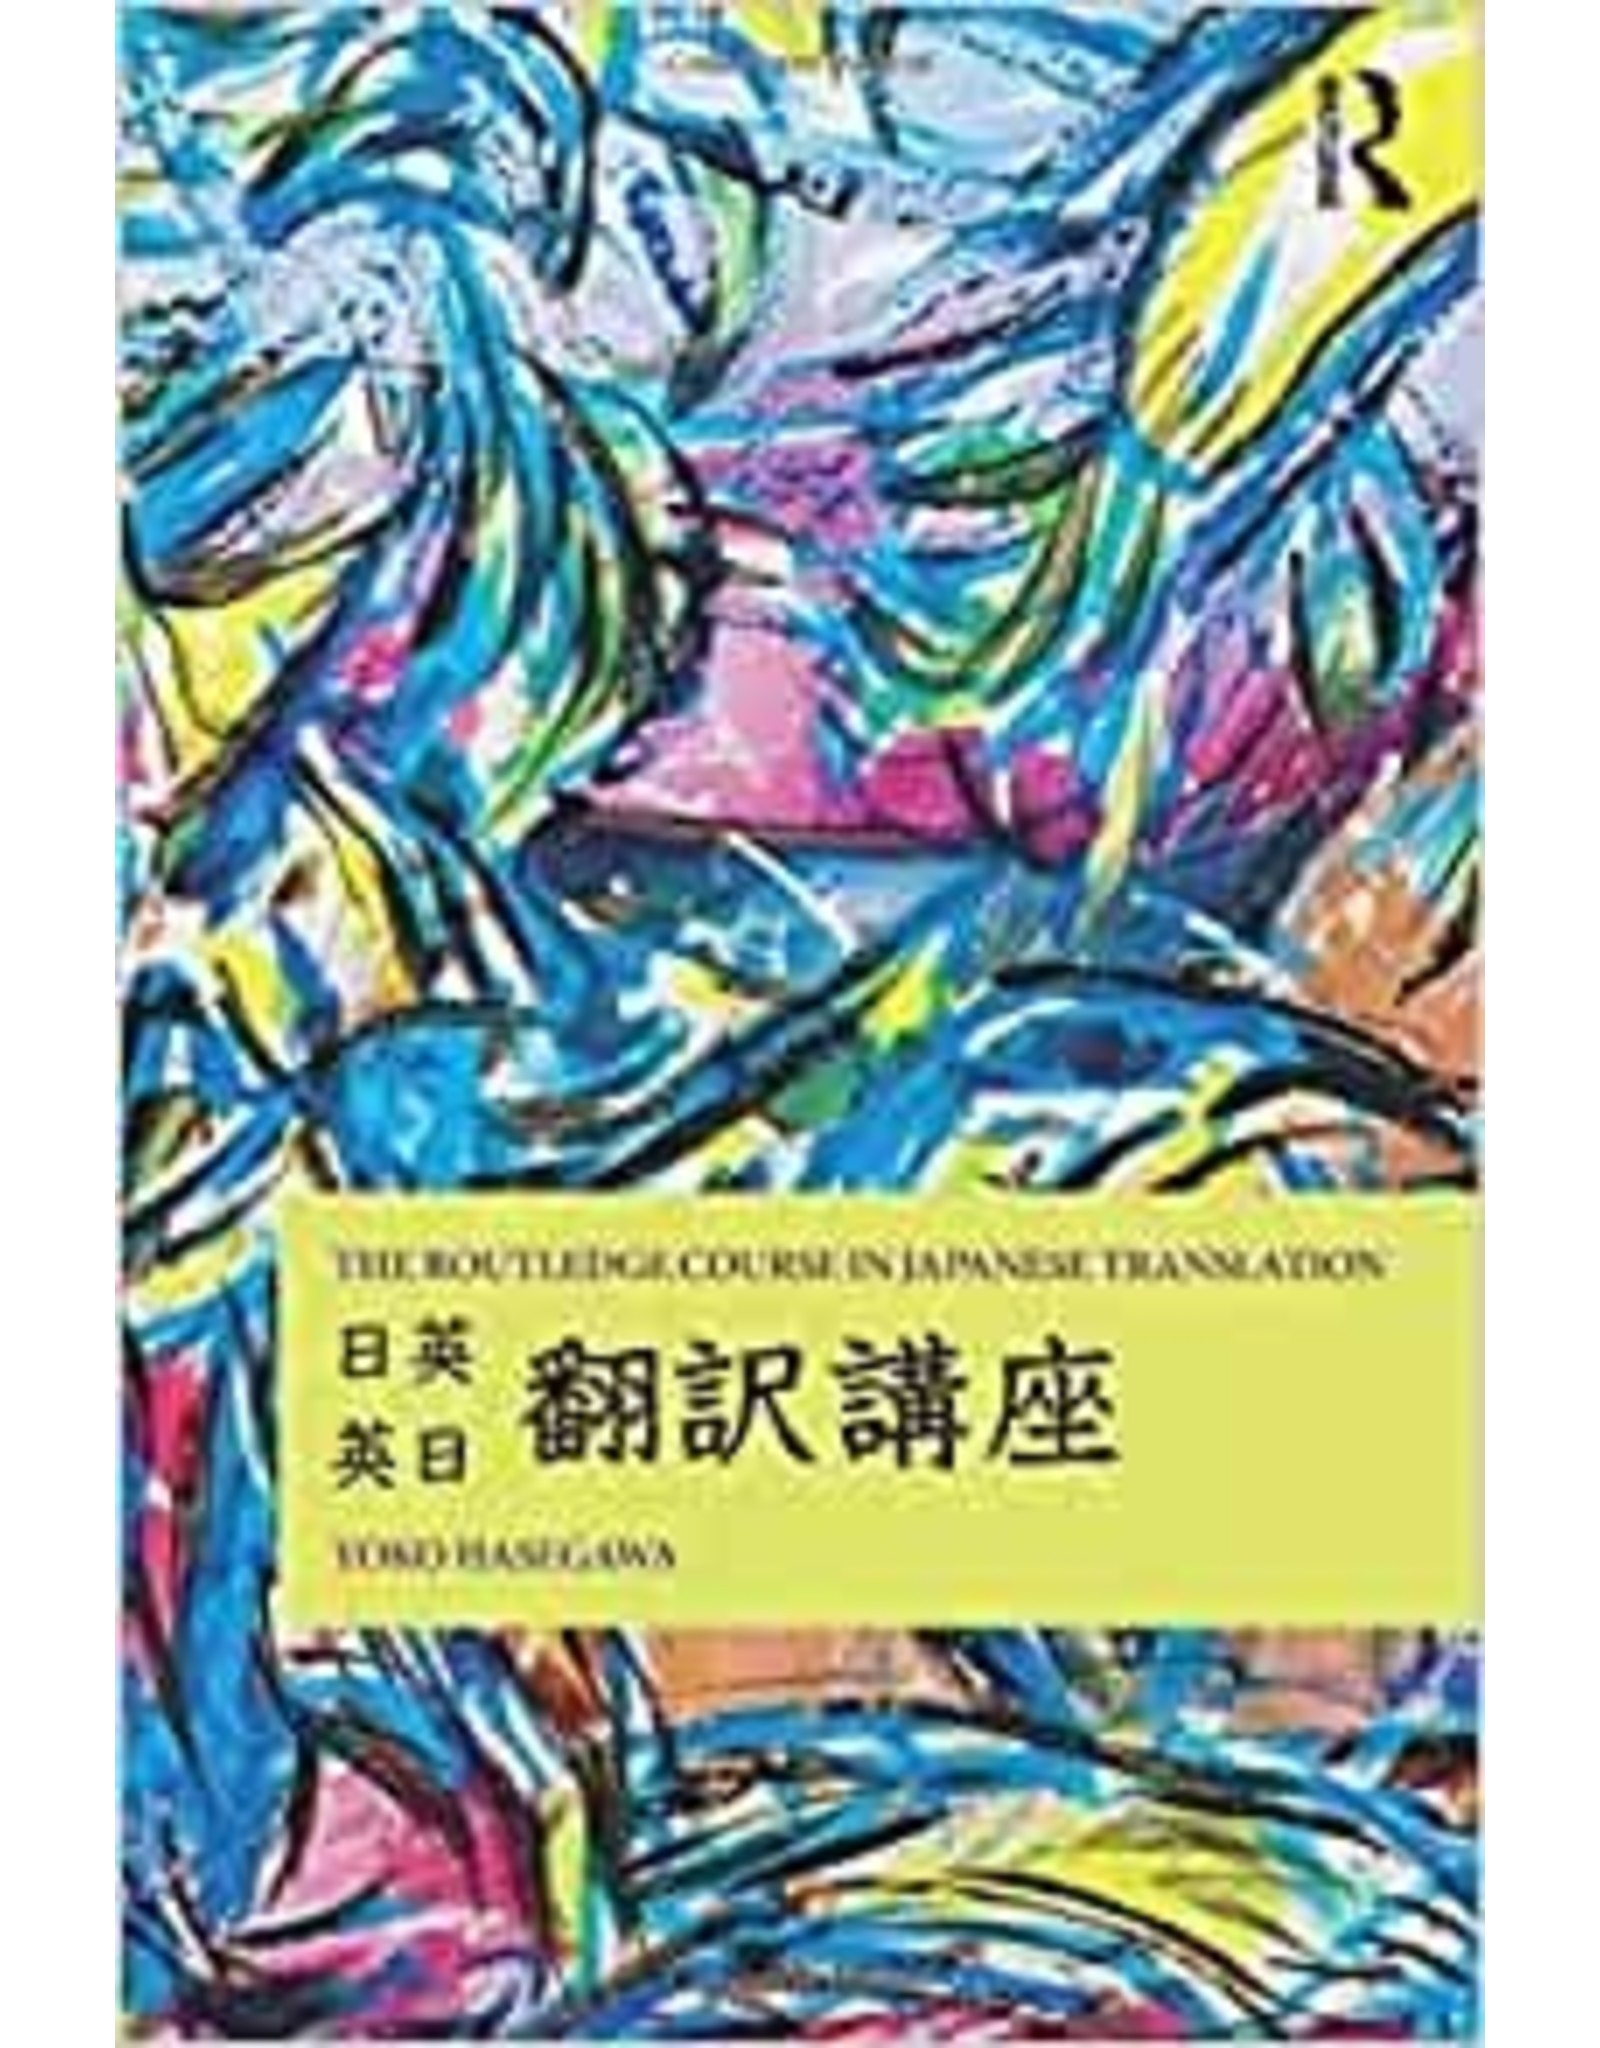 Routledge THE ROUTLEDGE COURSE IN JAPANESE TRANSLATION